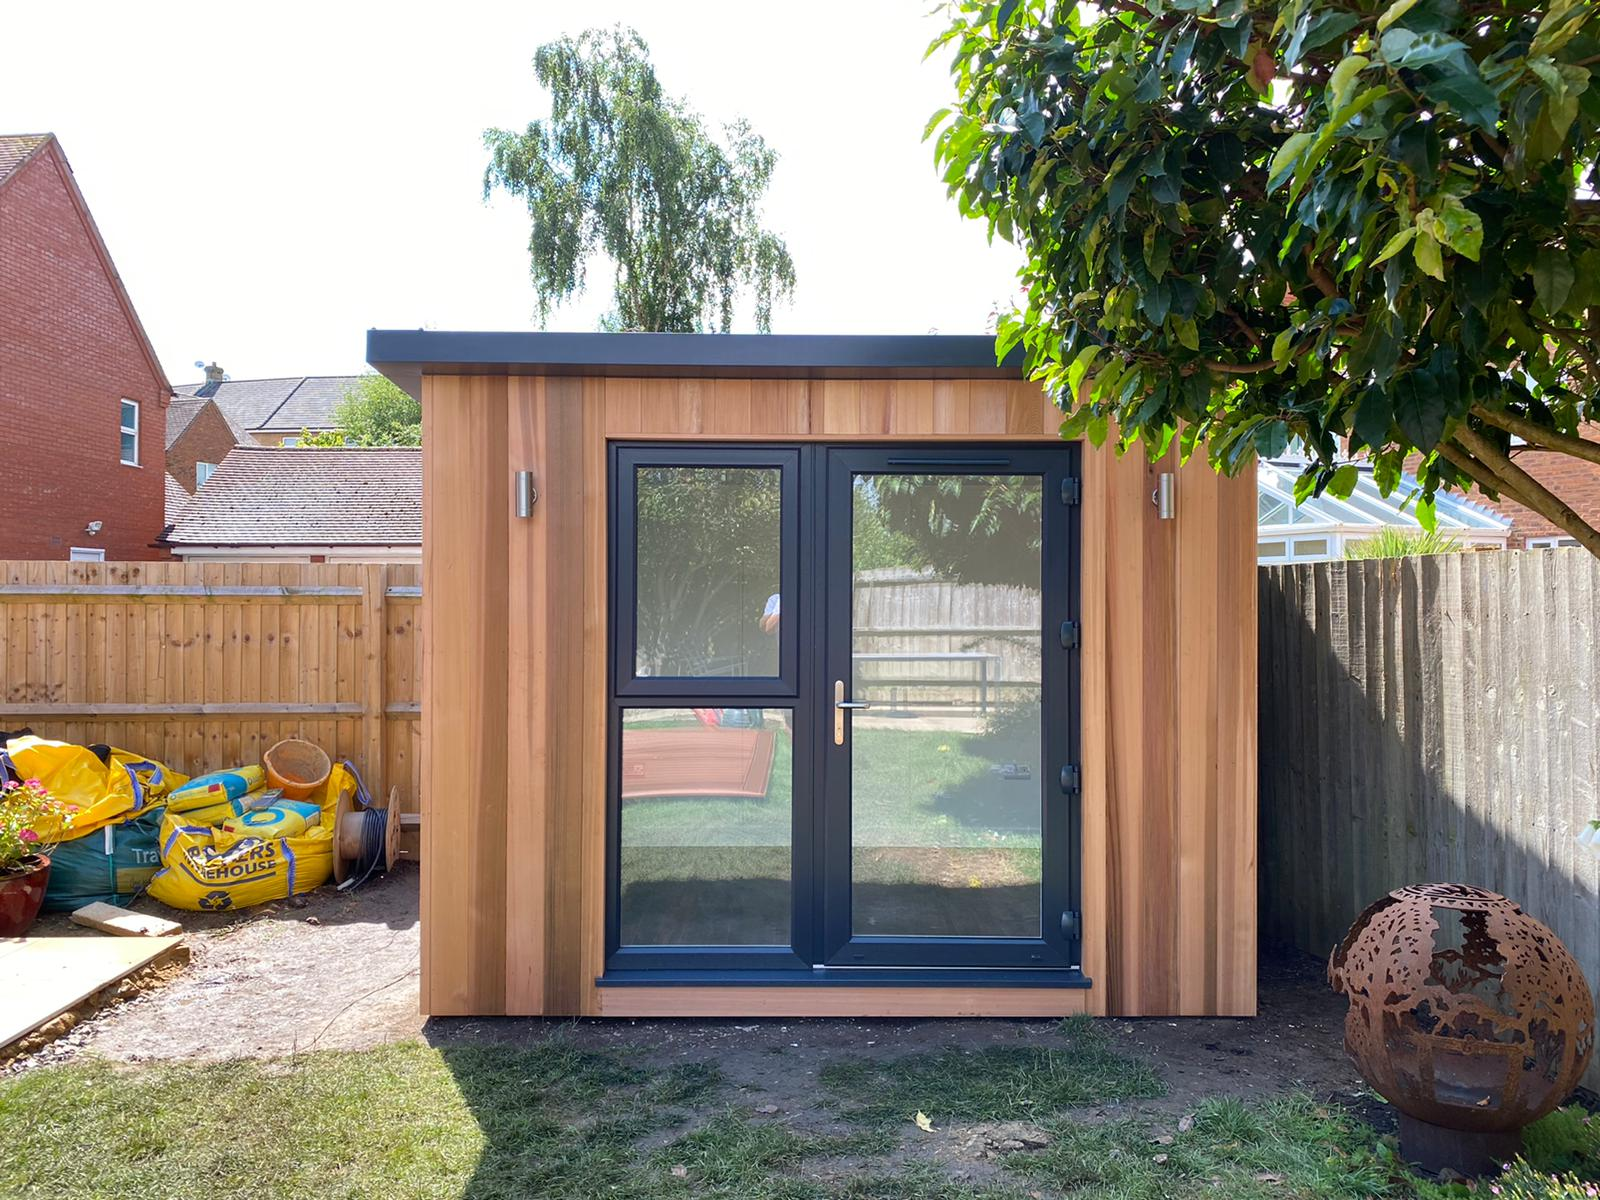 3m x 2.4m Contemporary Overhang with additional side door